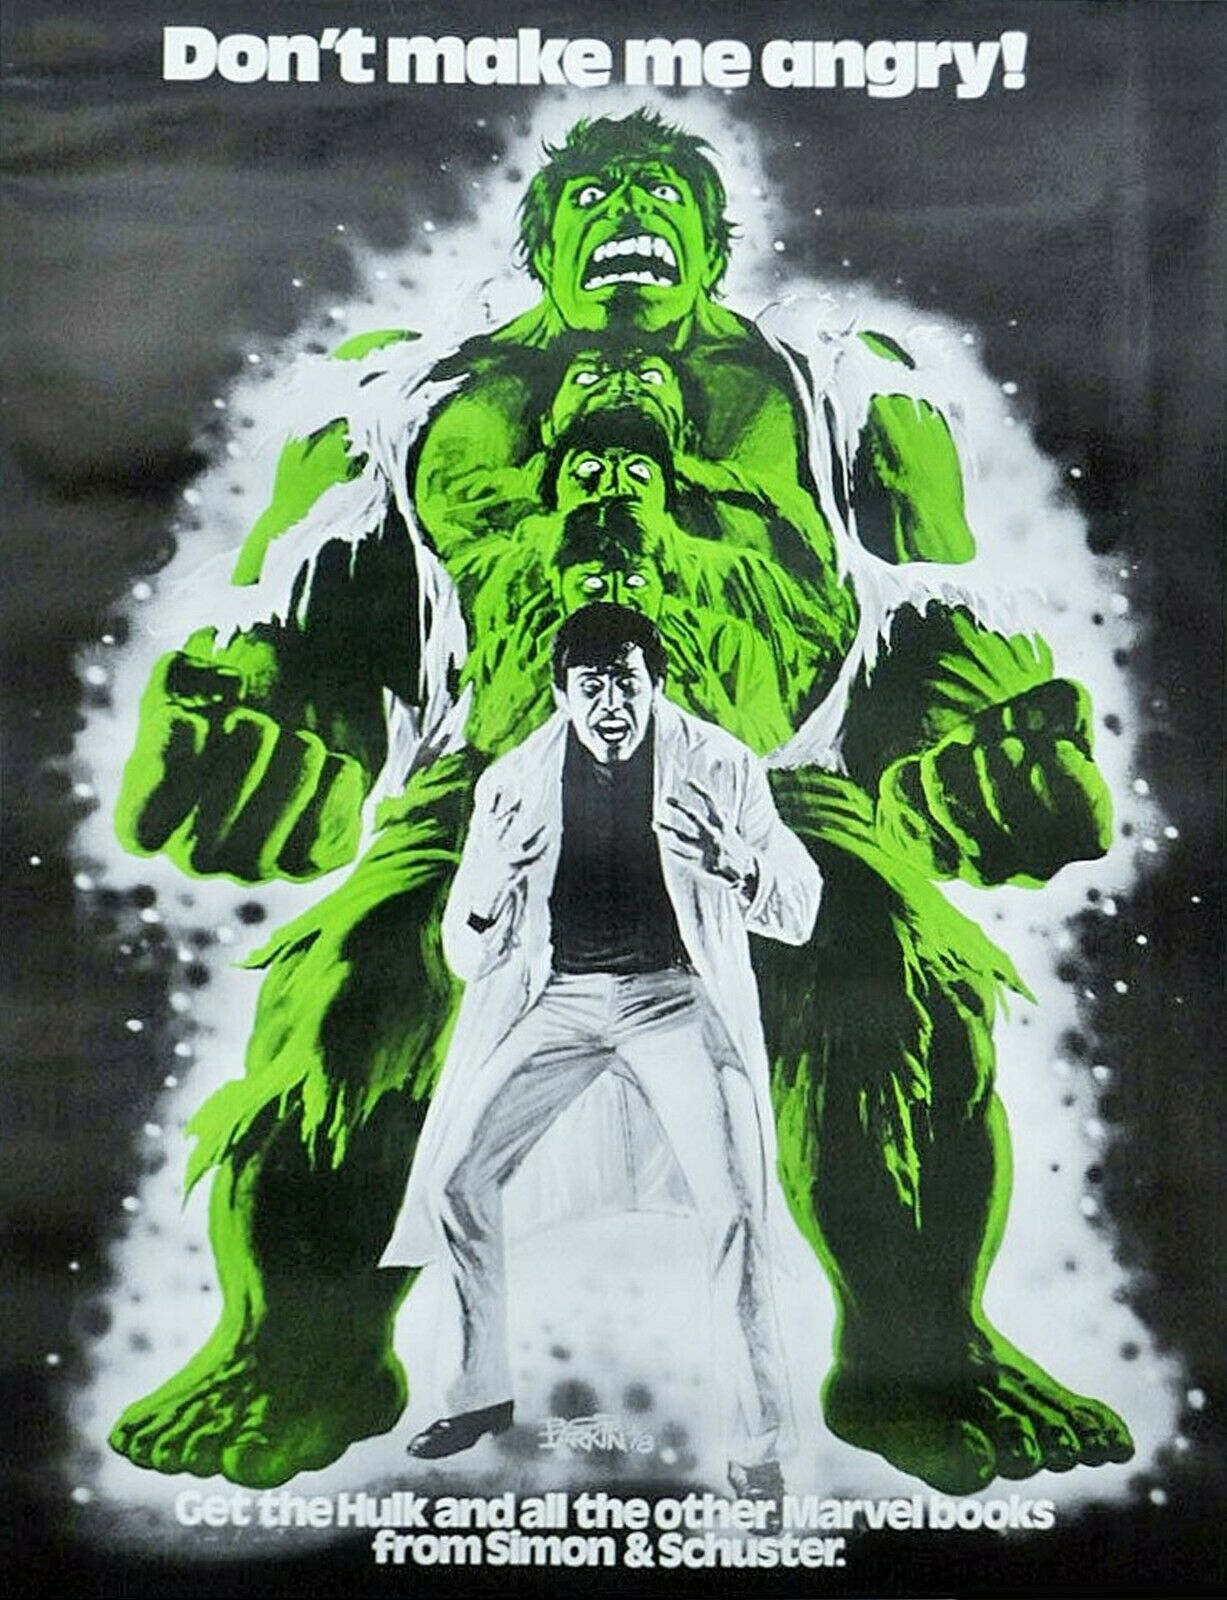 Incredible Hulk Poster PlaidStallions 5 Awesome Things on eBay